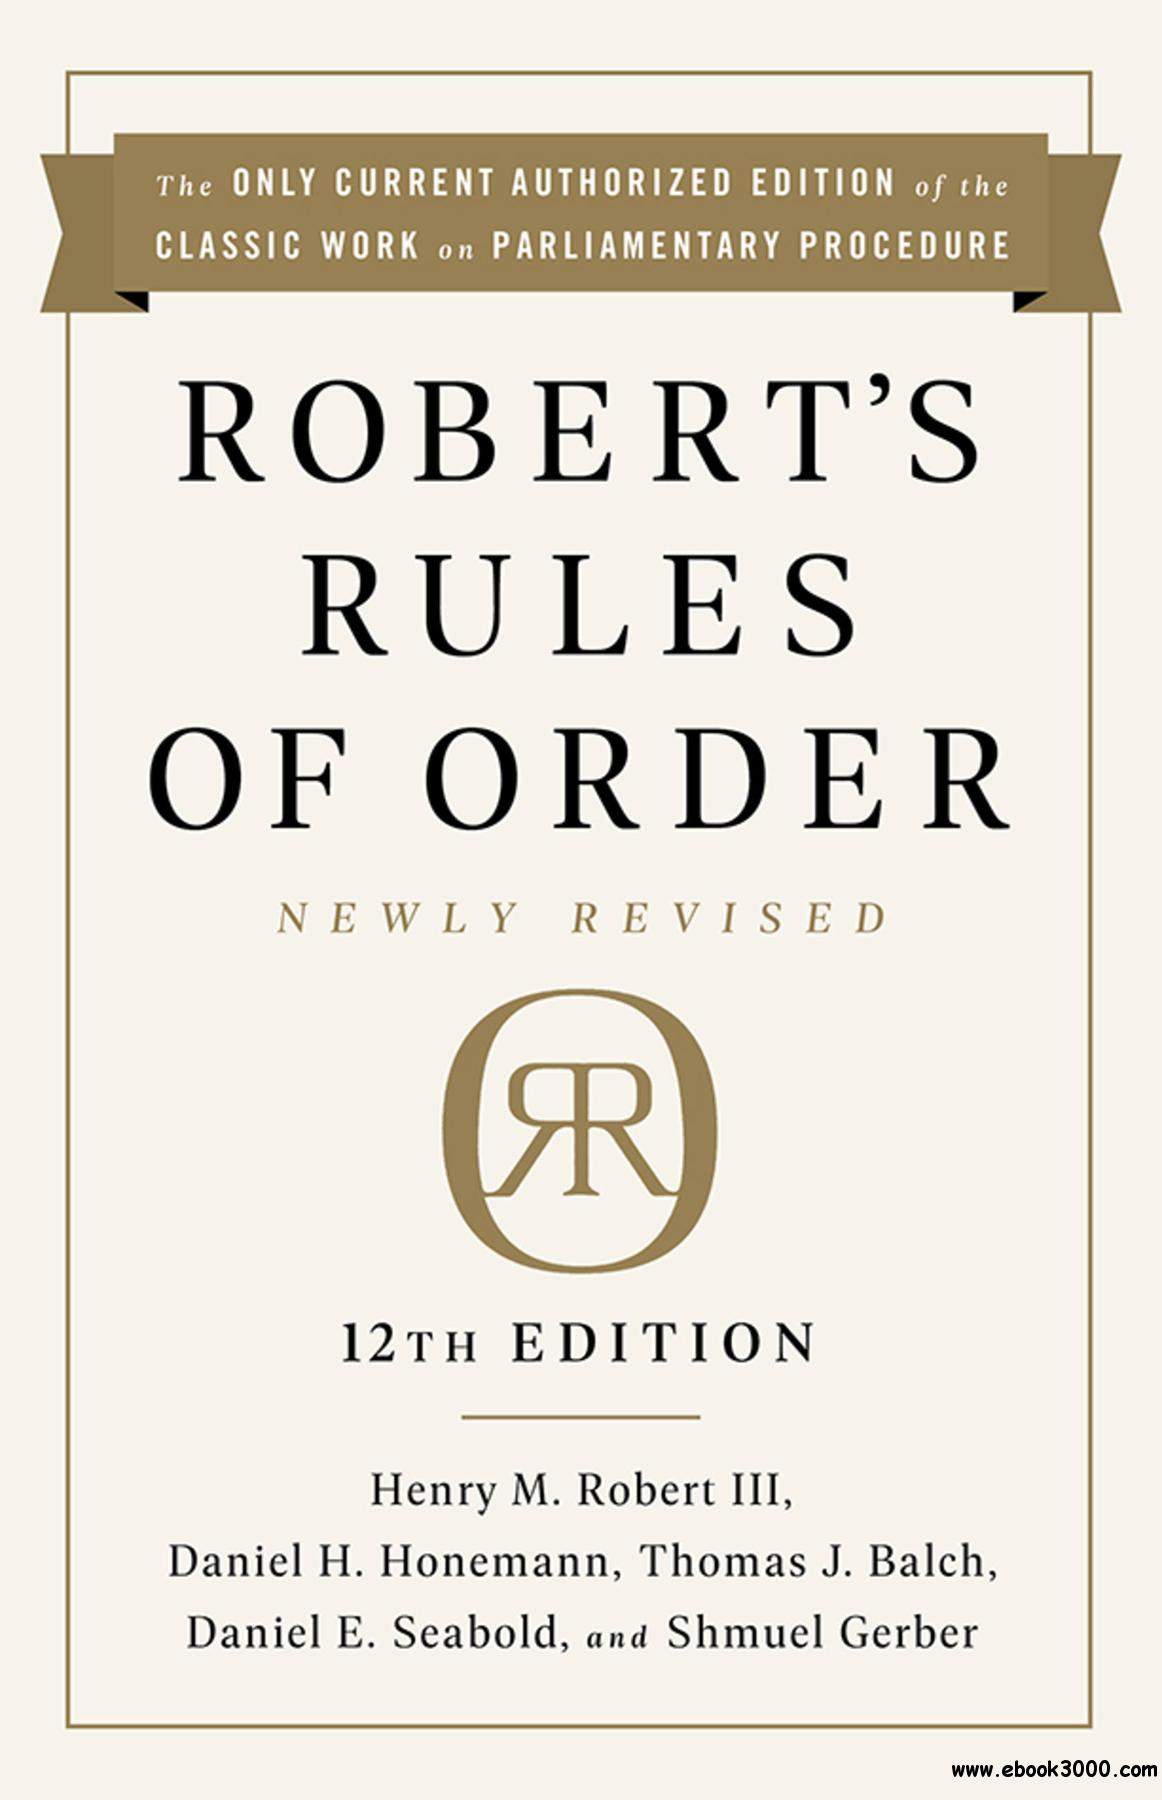 Robert's Rules of Order, Newly Revised 12th Edition